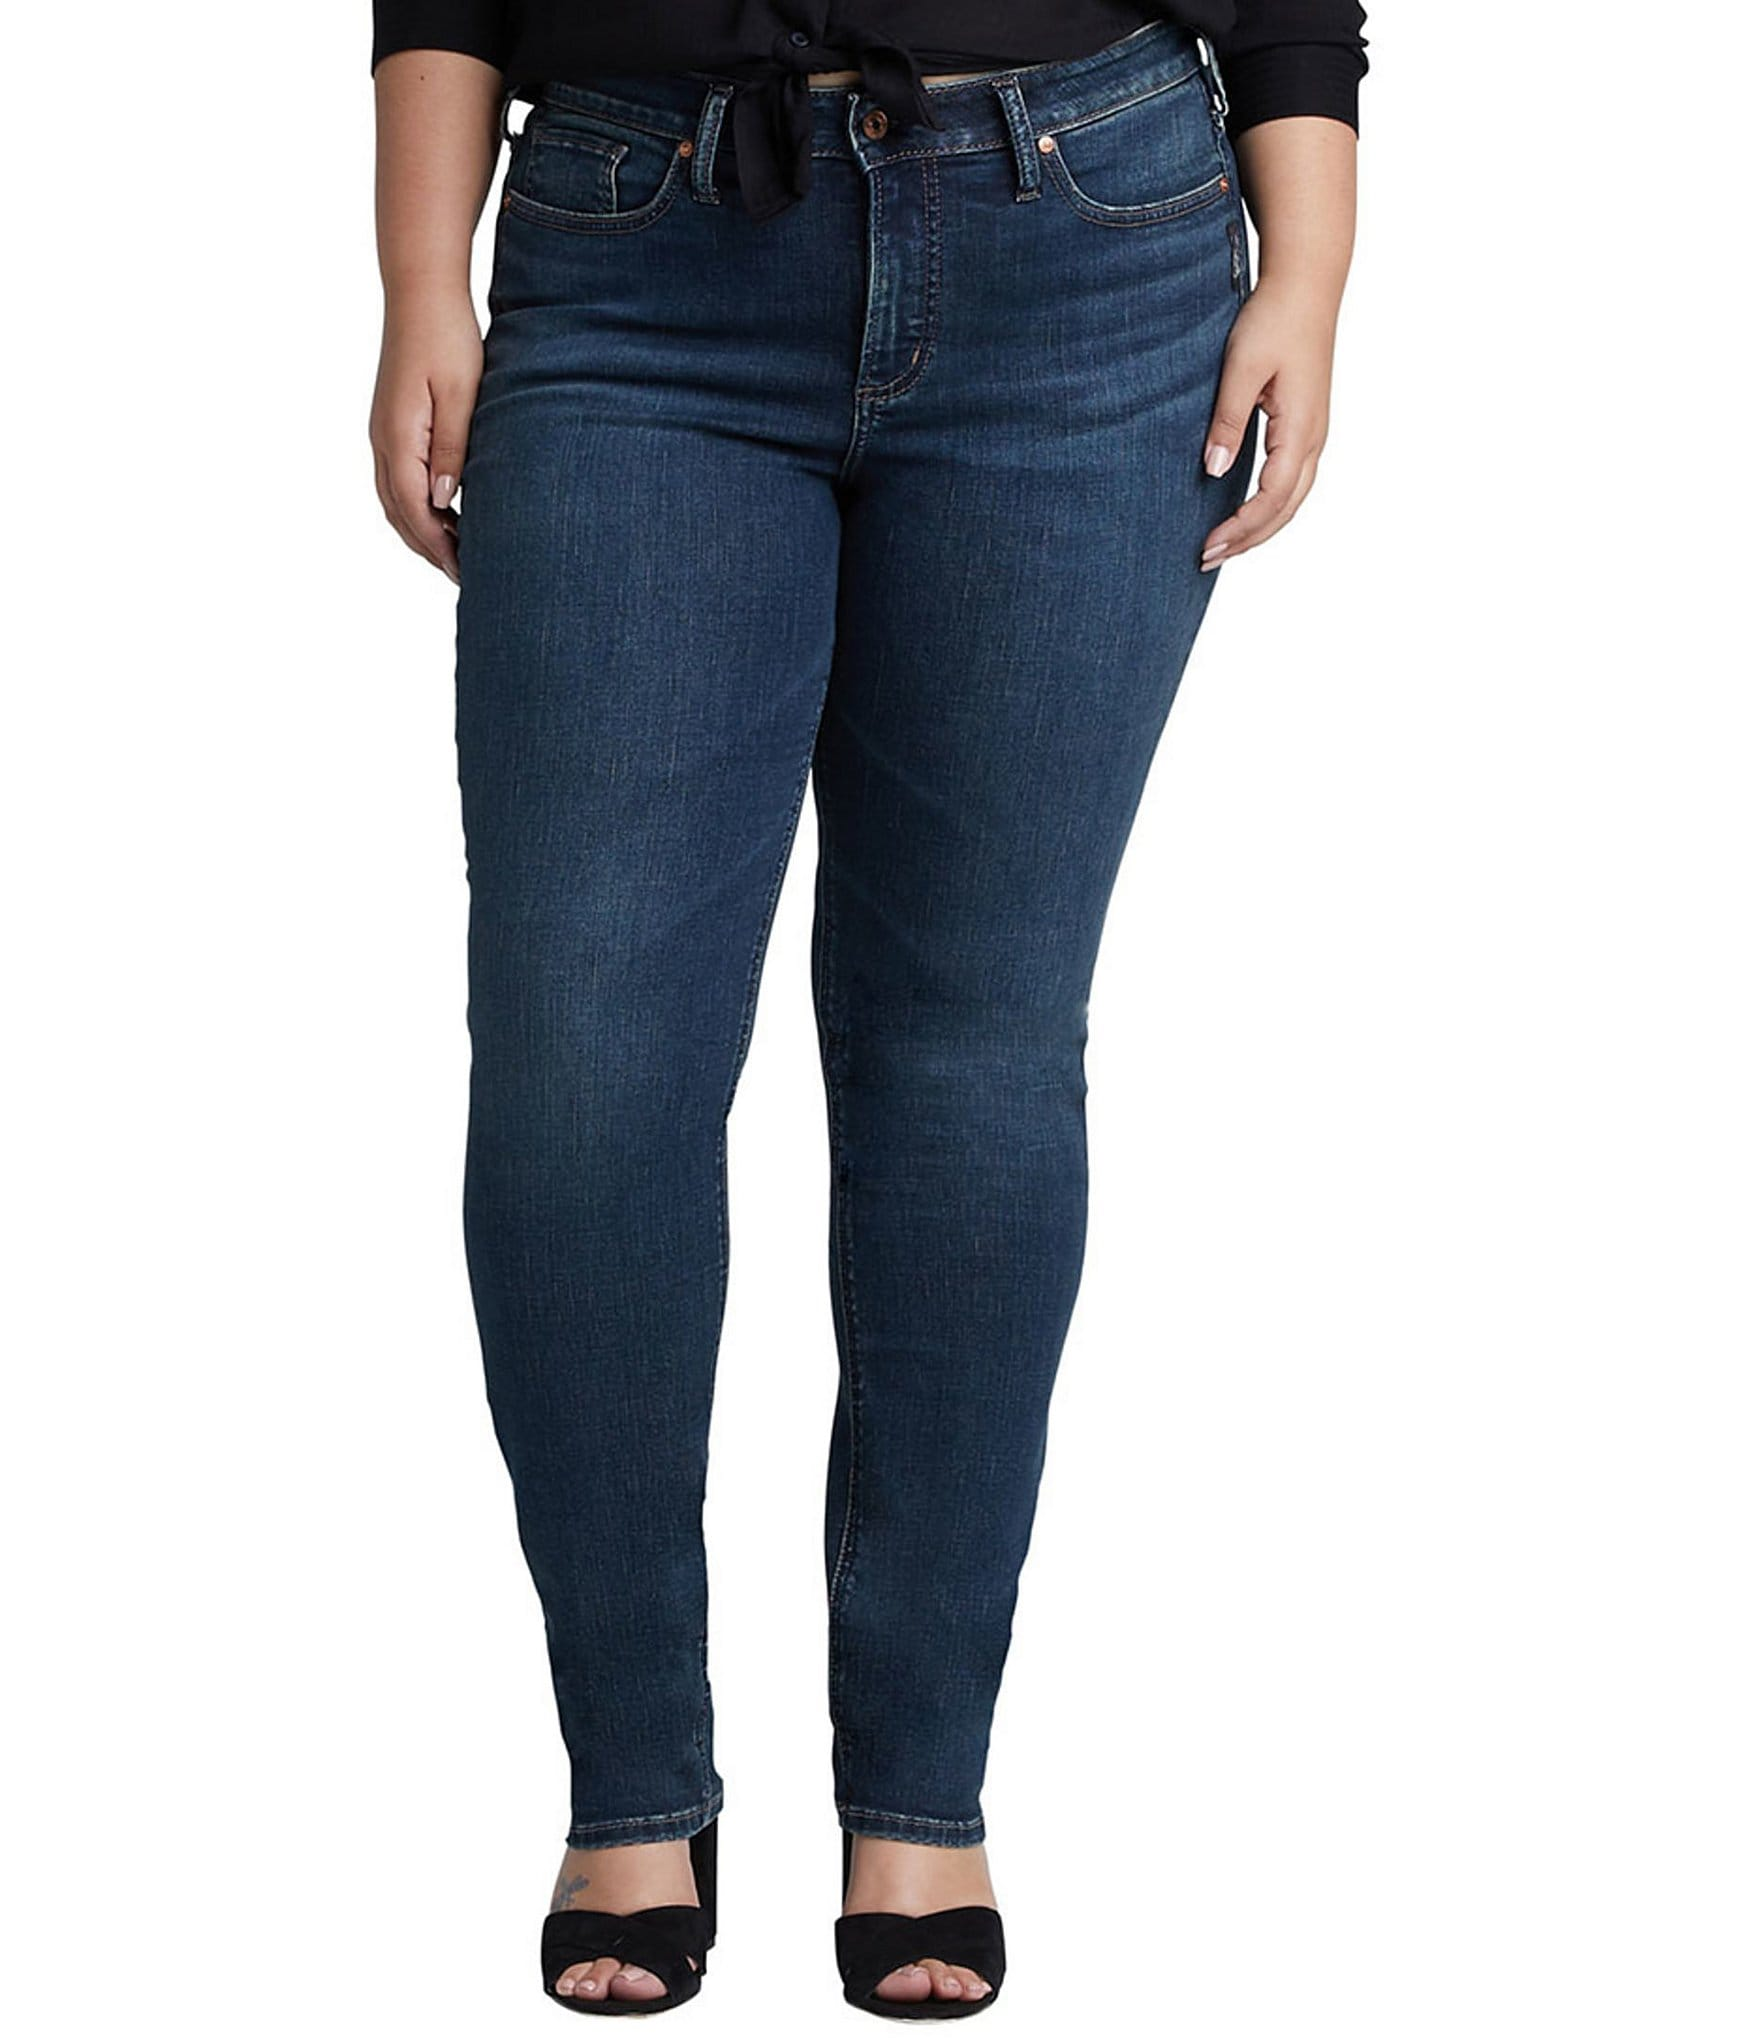 Silver Jeans Co Womens Plus Size Avery Curvy Fit High Rise Skinny Jeans